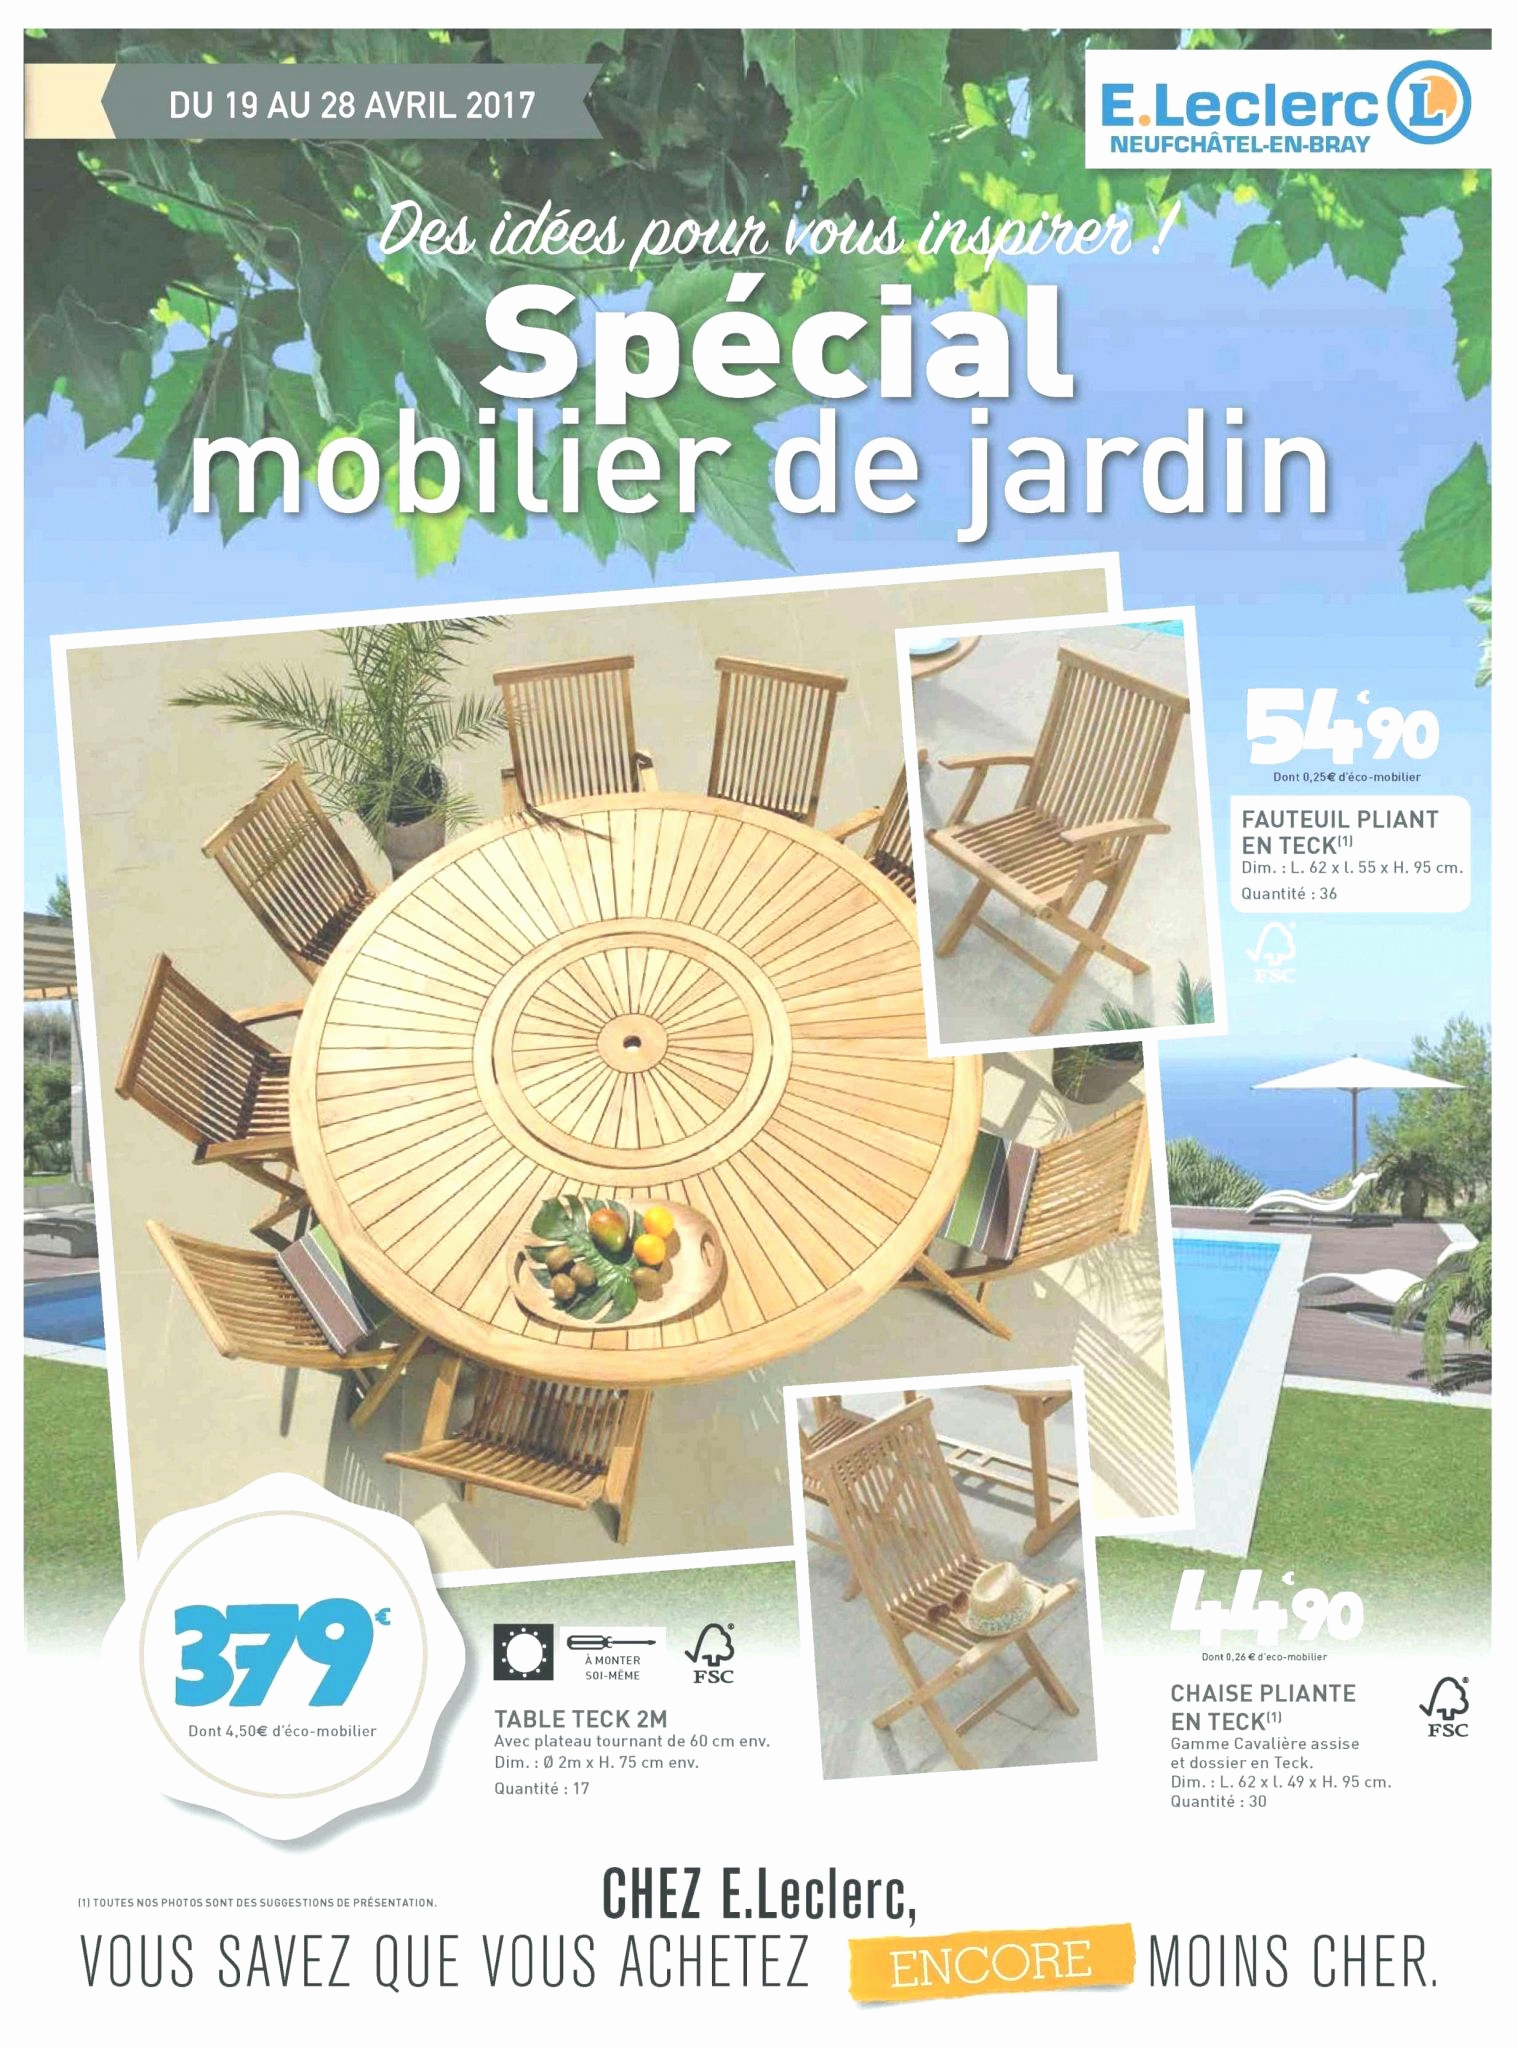 Table Chaise De Jardin Beau Salon De Jardin Leclerc Catalogue 2017 Le Meilleur De Table Of 30 Charmant Table Chaise De Jardin